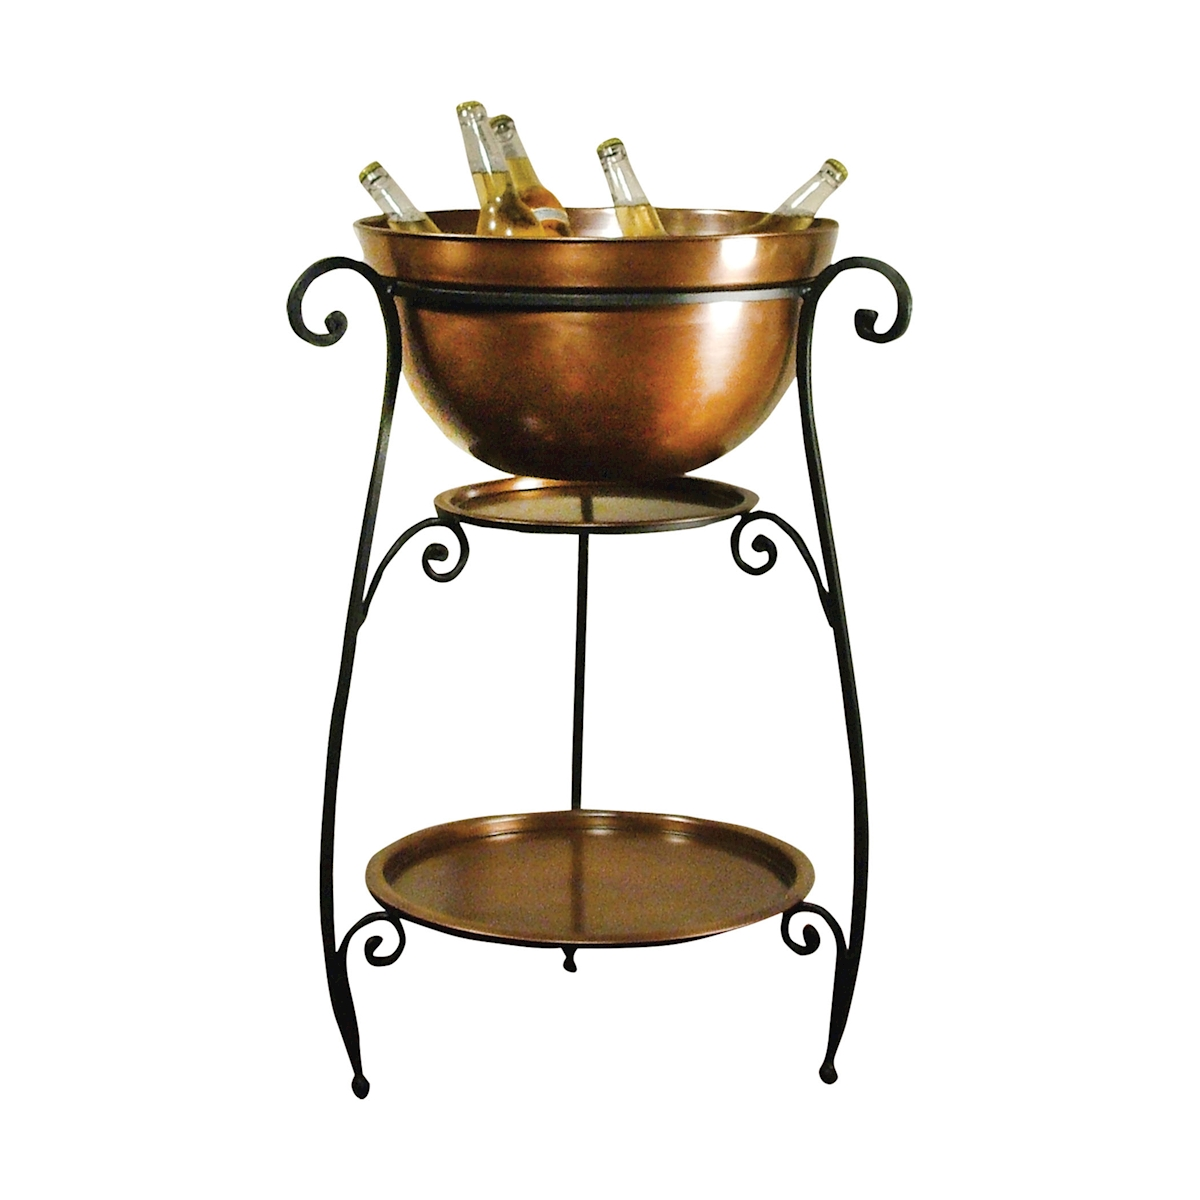 Pomeroy La Forge Beverage Stand 770234